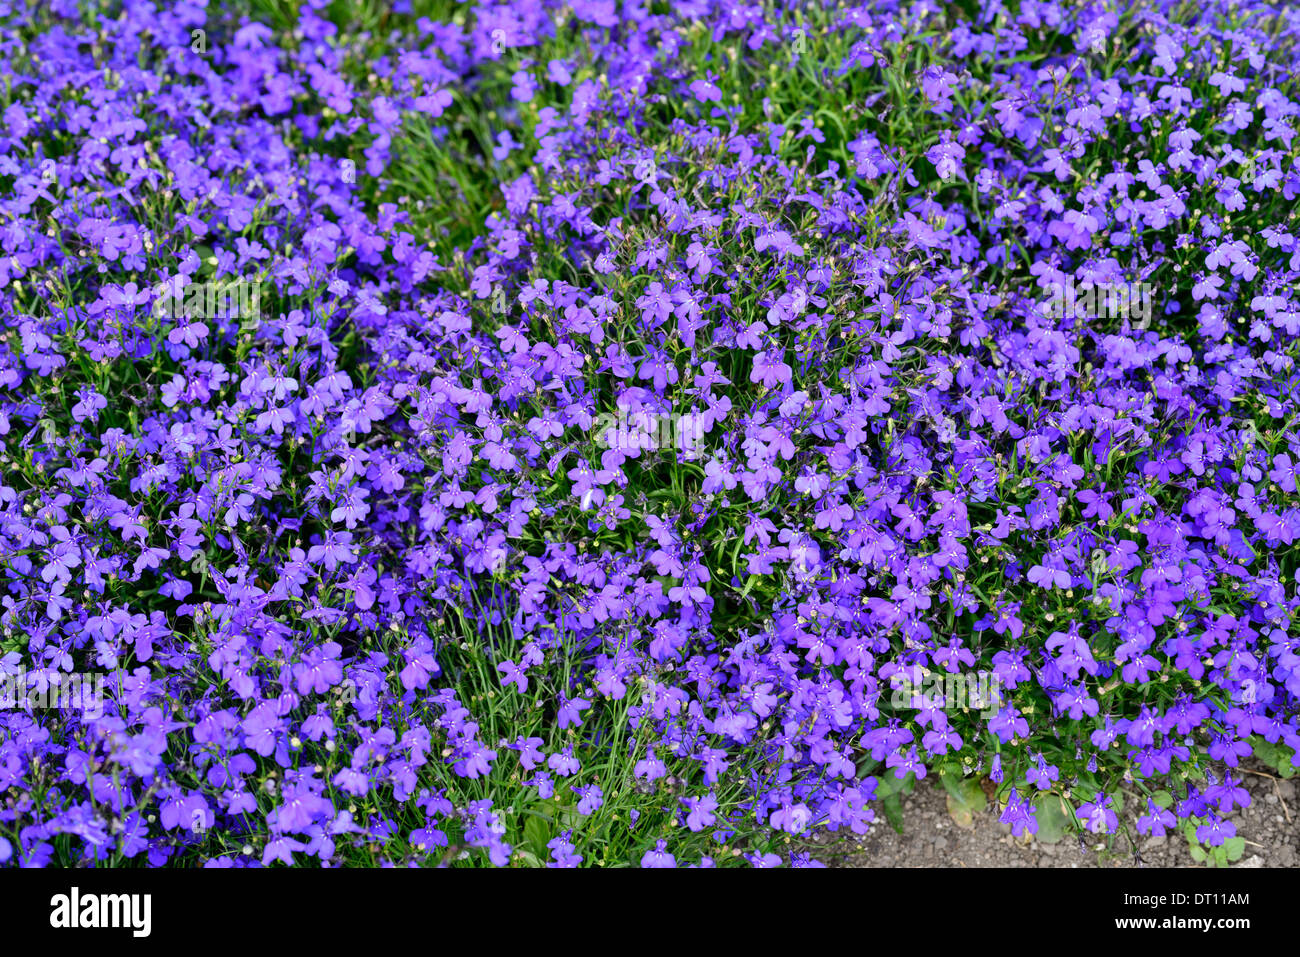 Lobelia Erinus Cobalt Blue Blue Purple Flowers Flowering Blooms